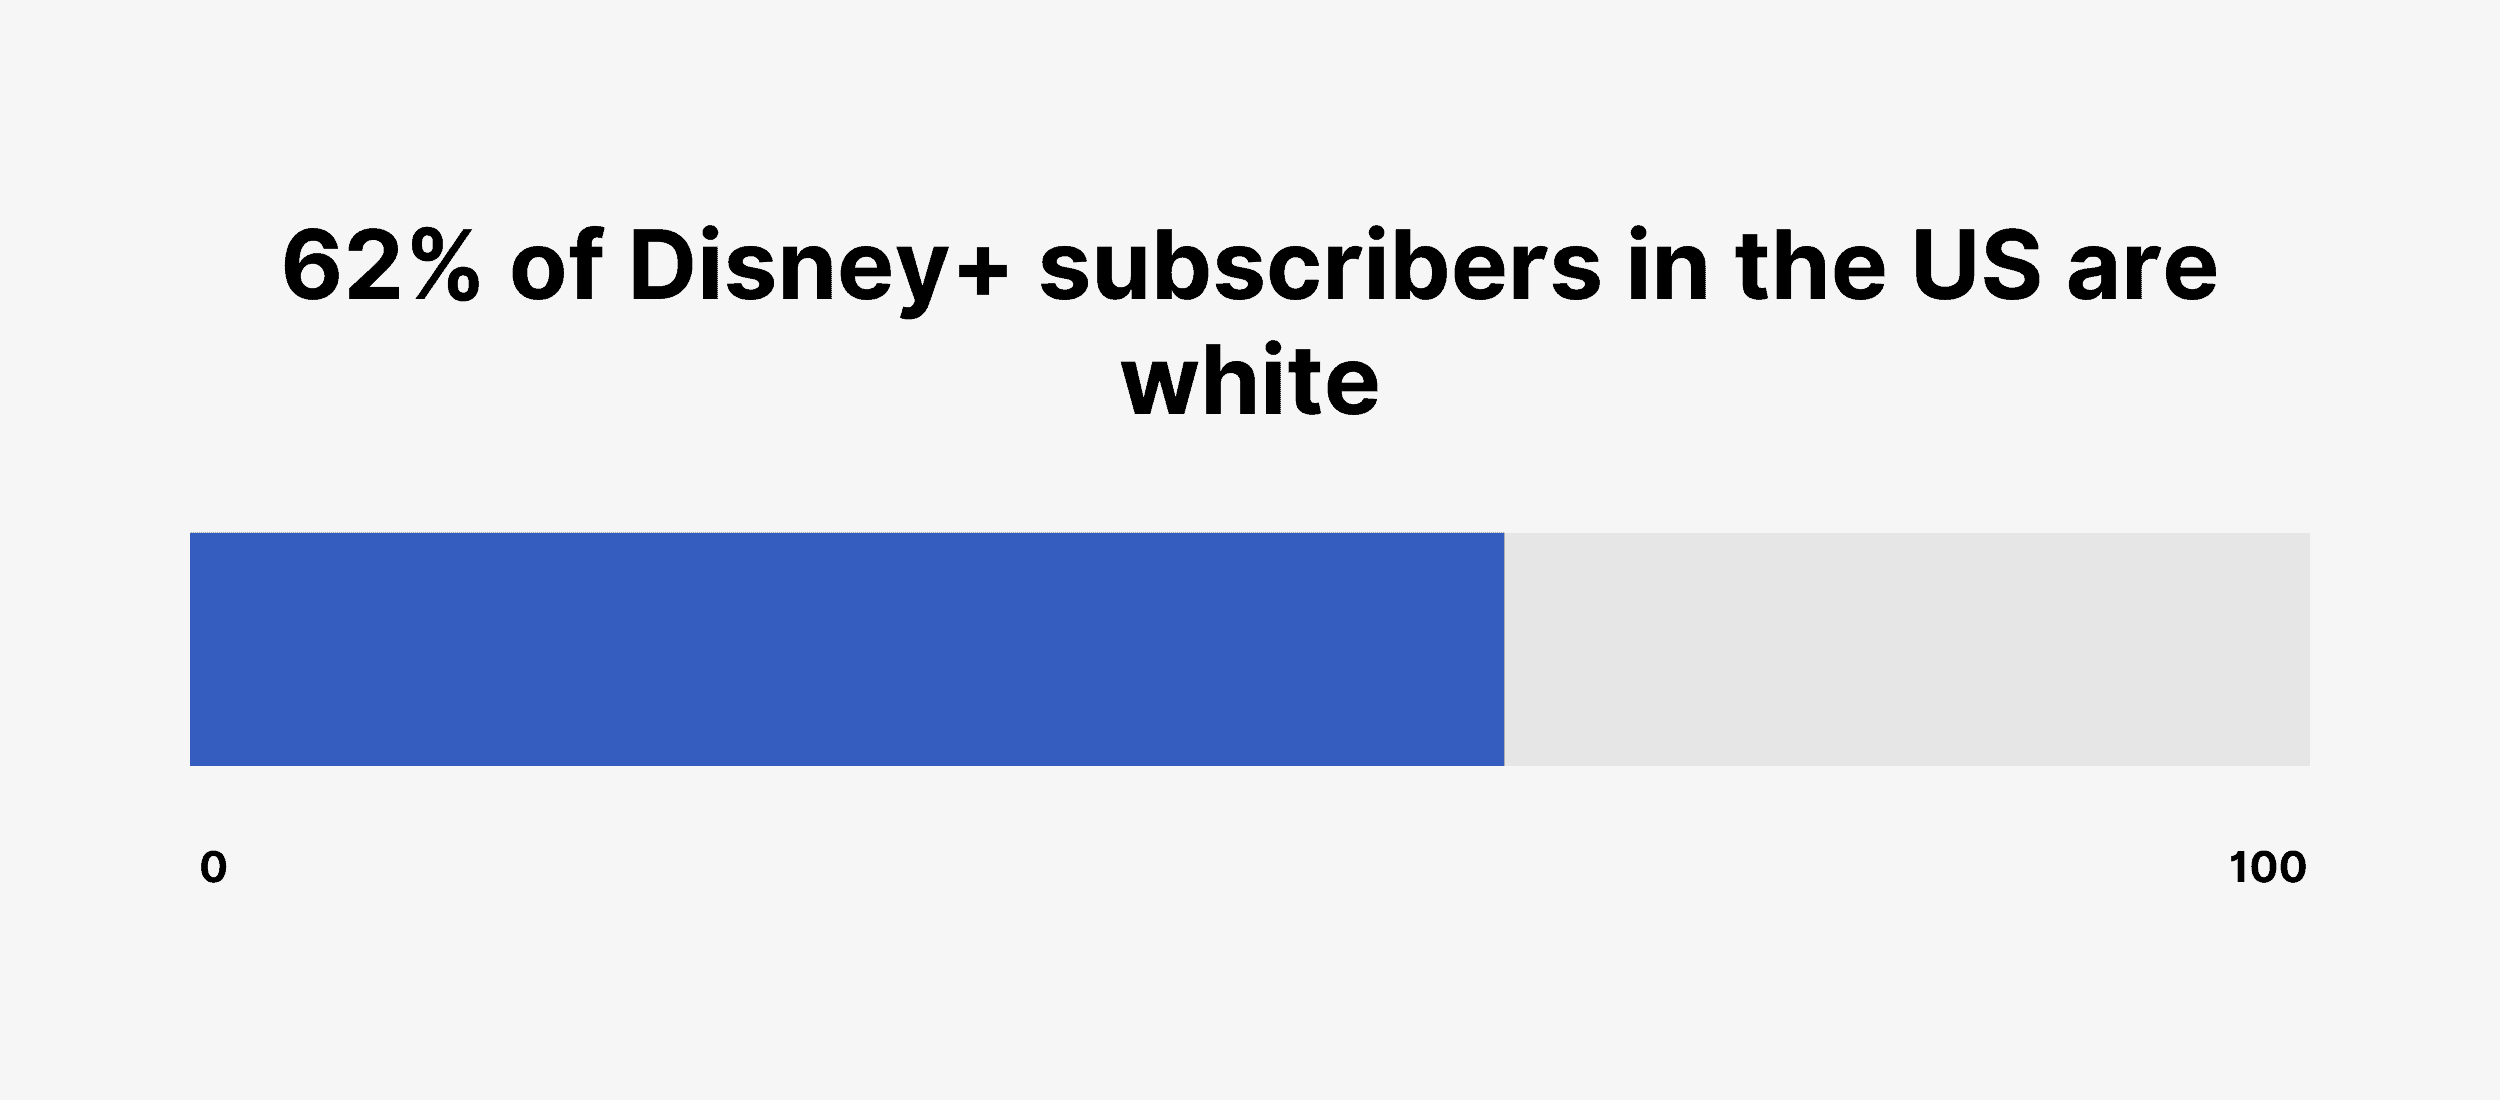 62% of Disney+ subscribers in the US are white